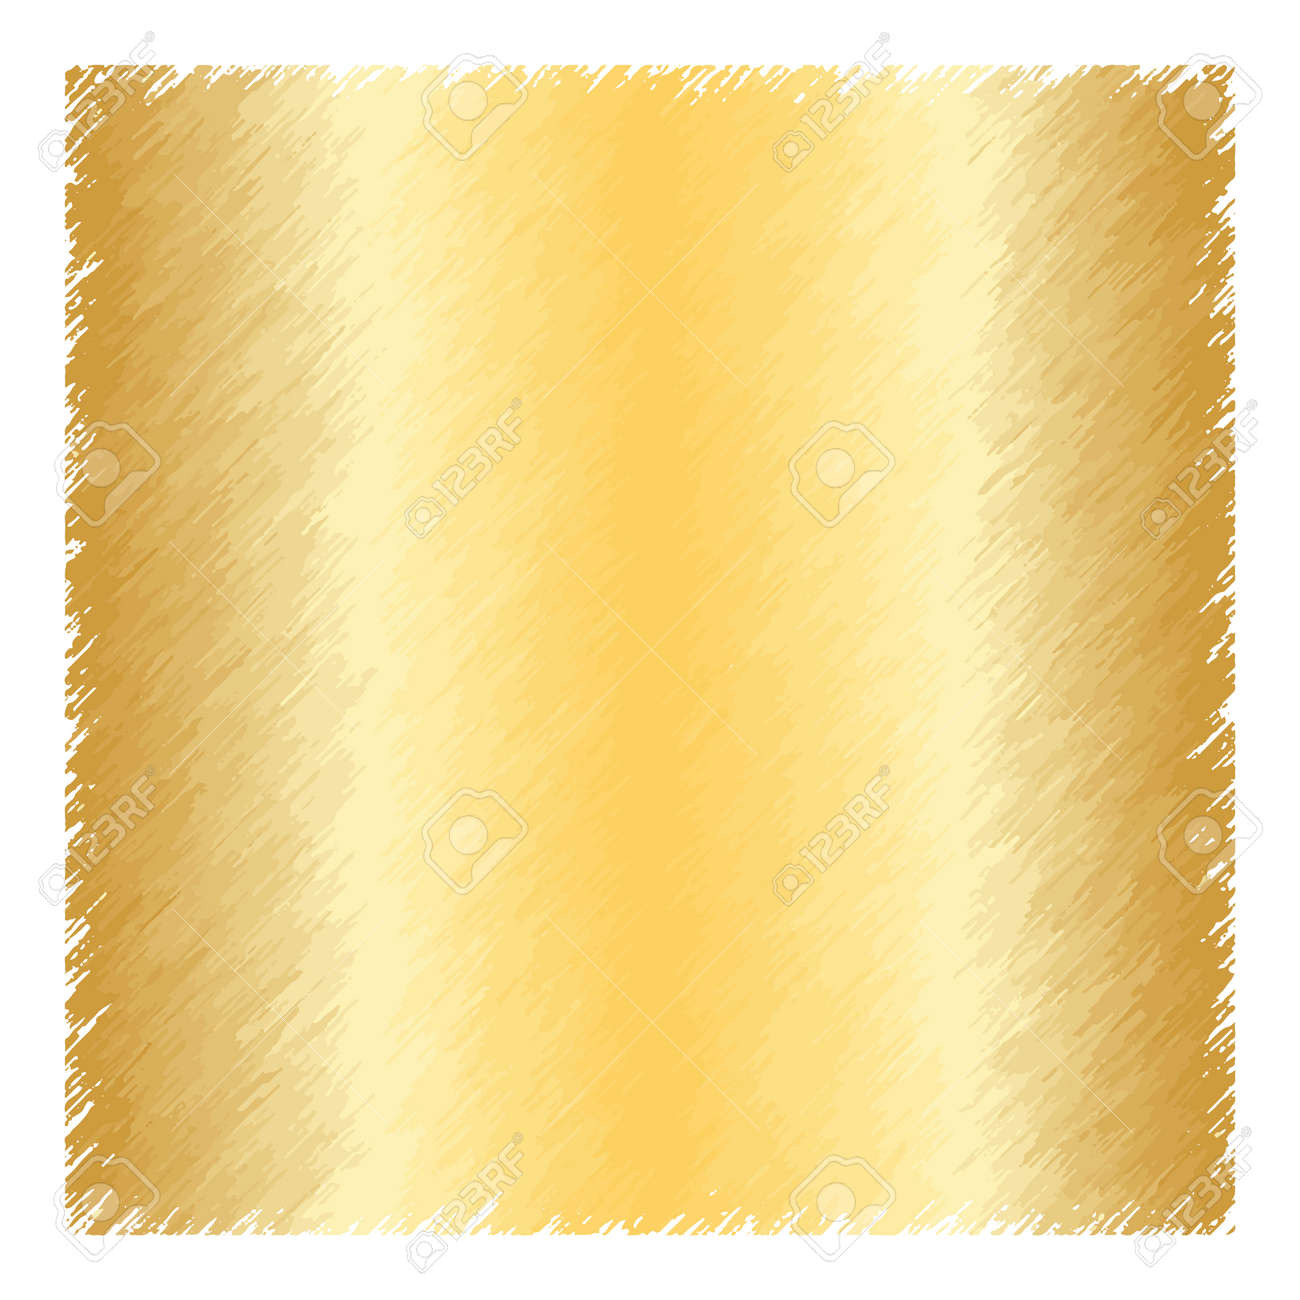 gold glitter texture square border template isolated on white glowing new year merry